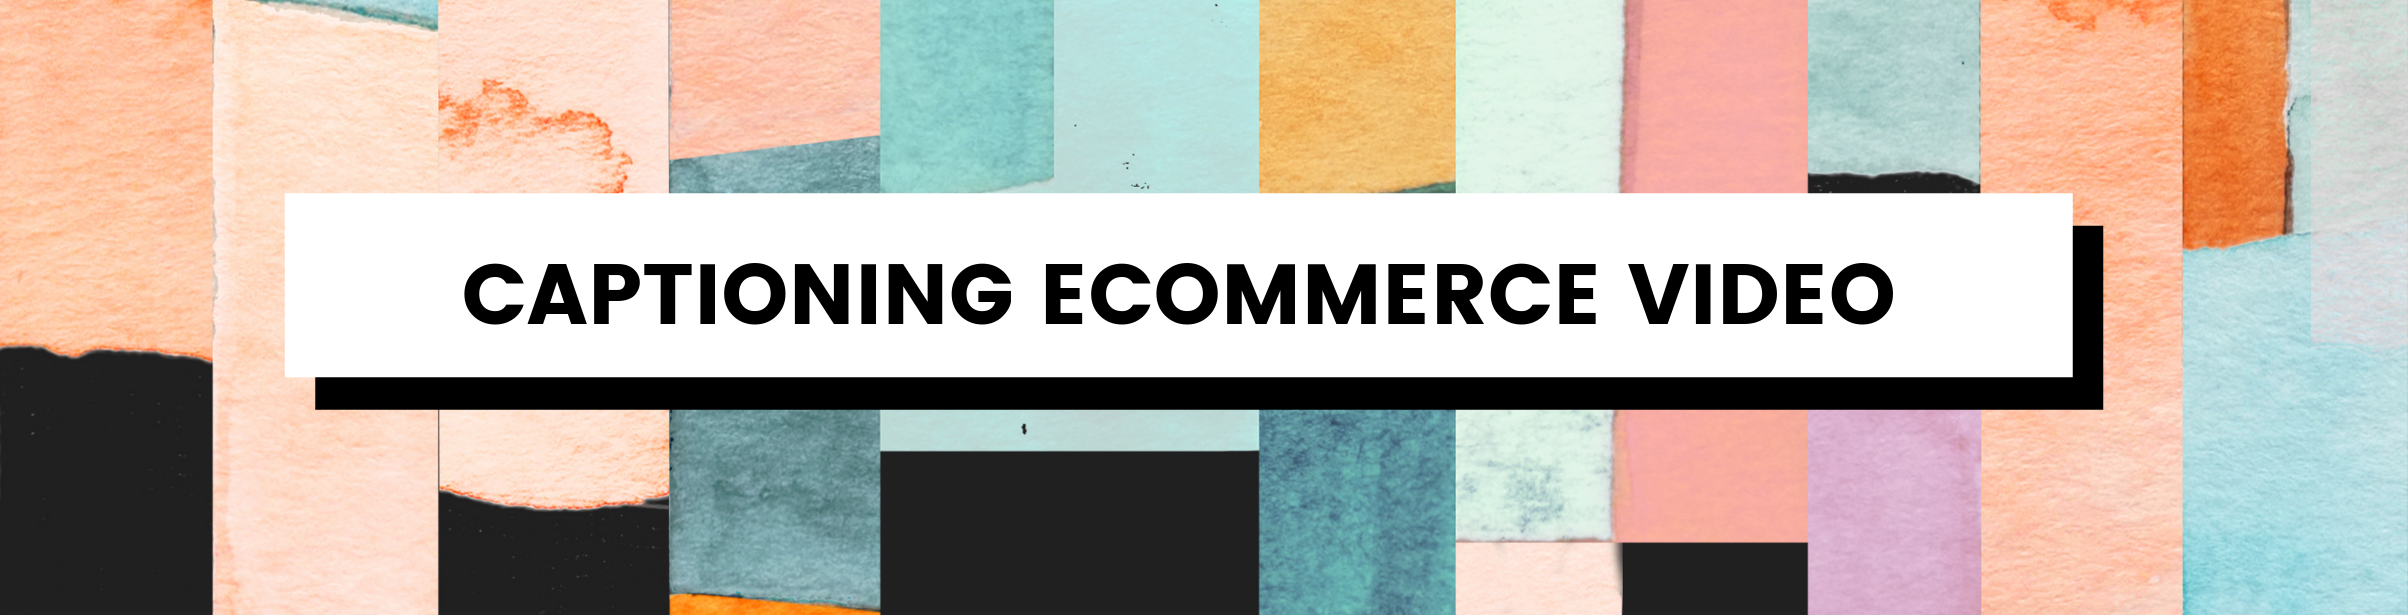 Captioning Ecommerce Video